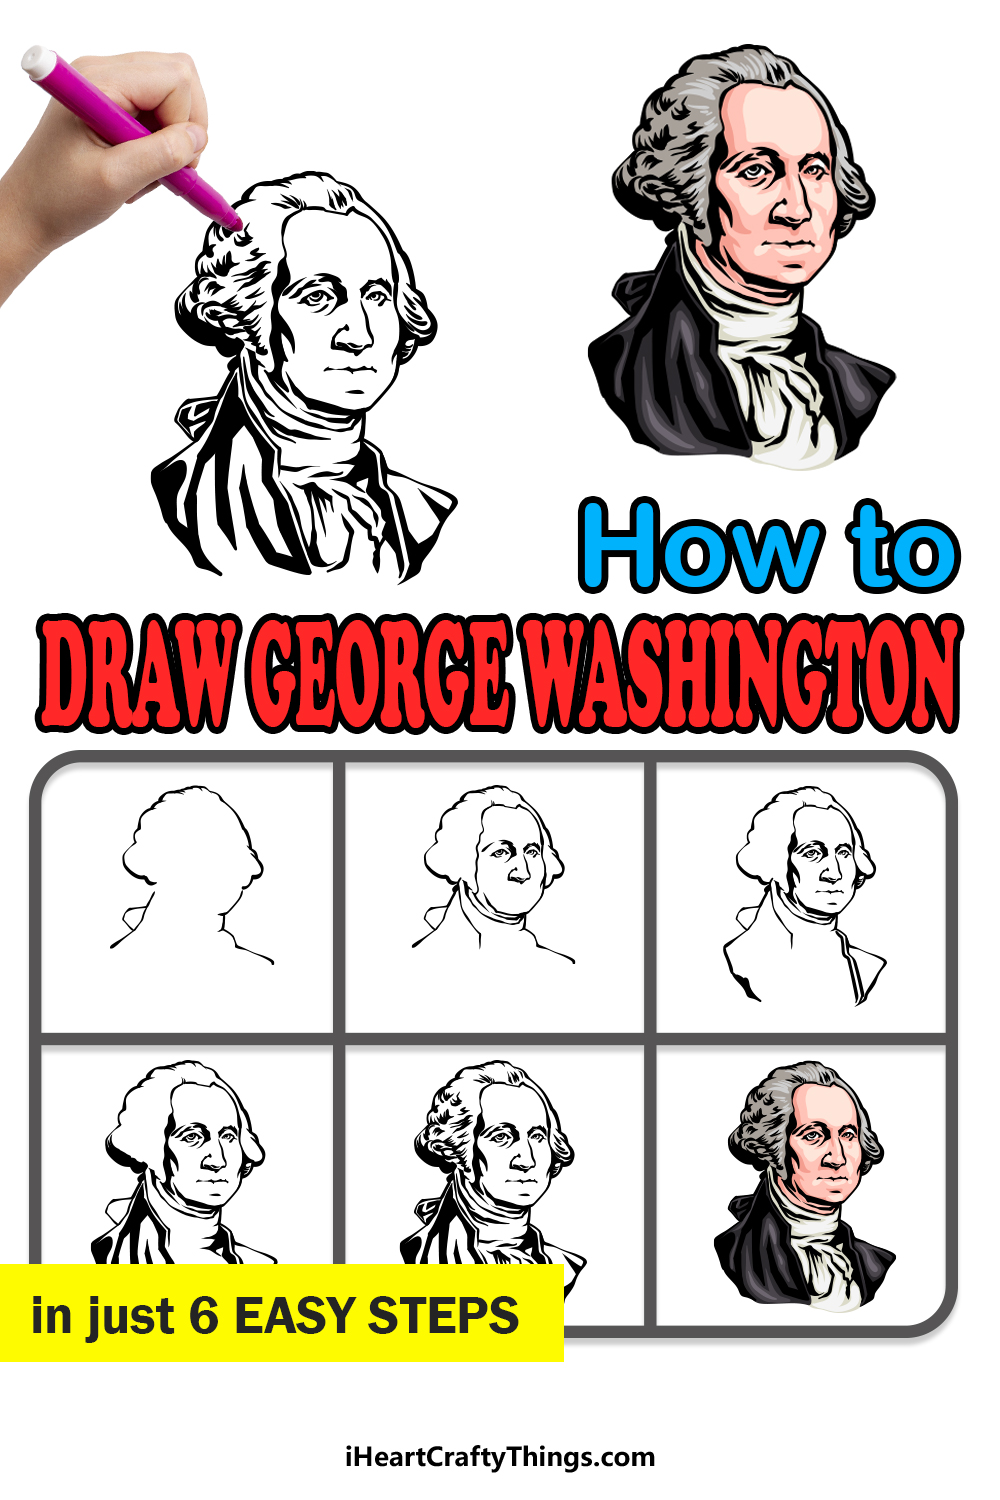 how to draw George Washington in 6 easy steps